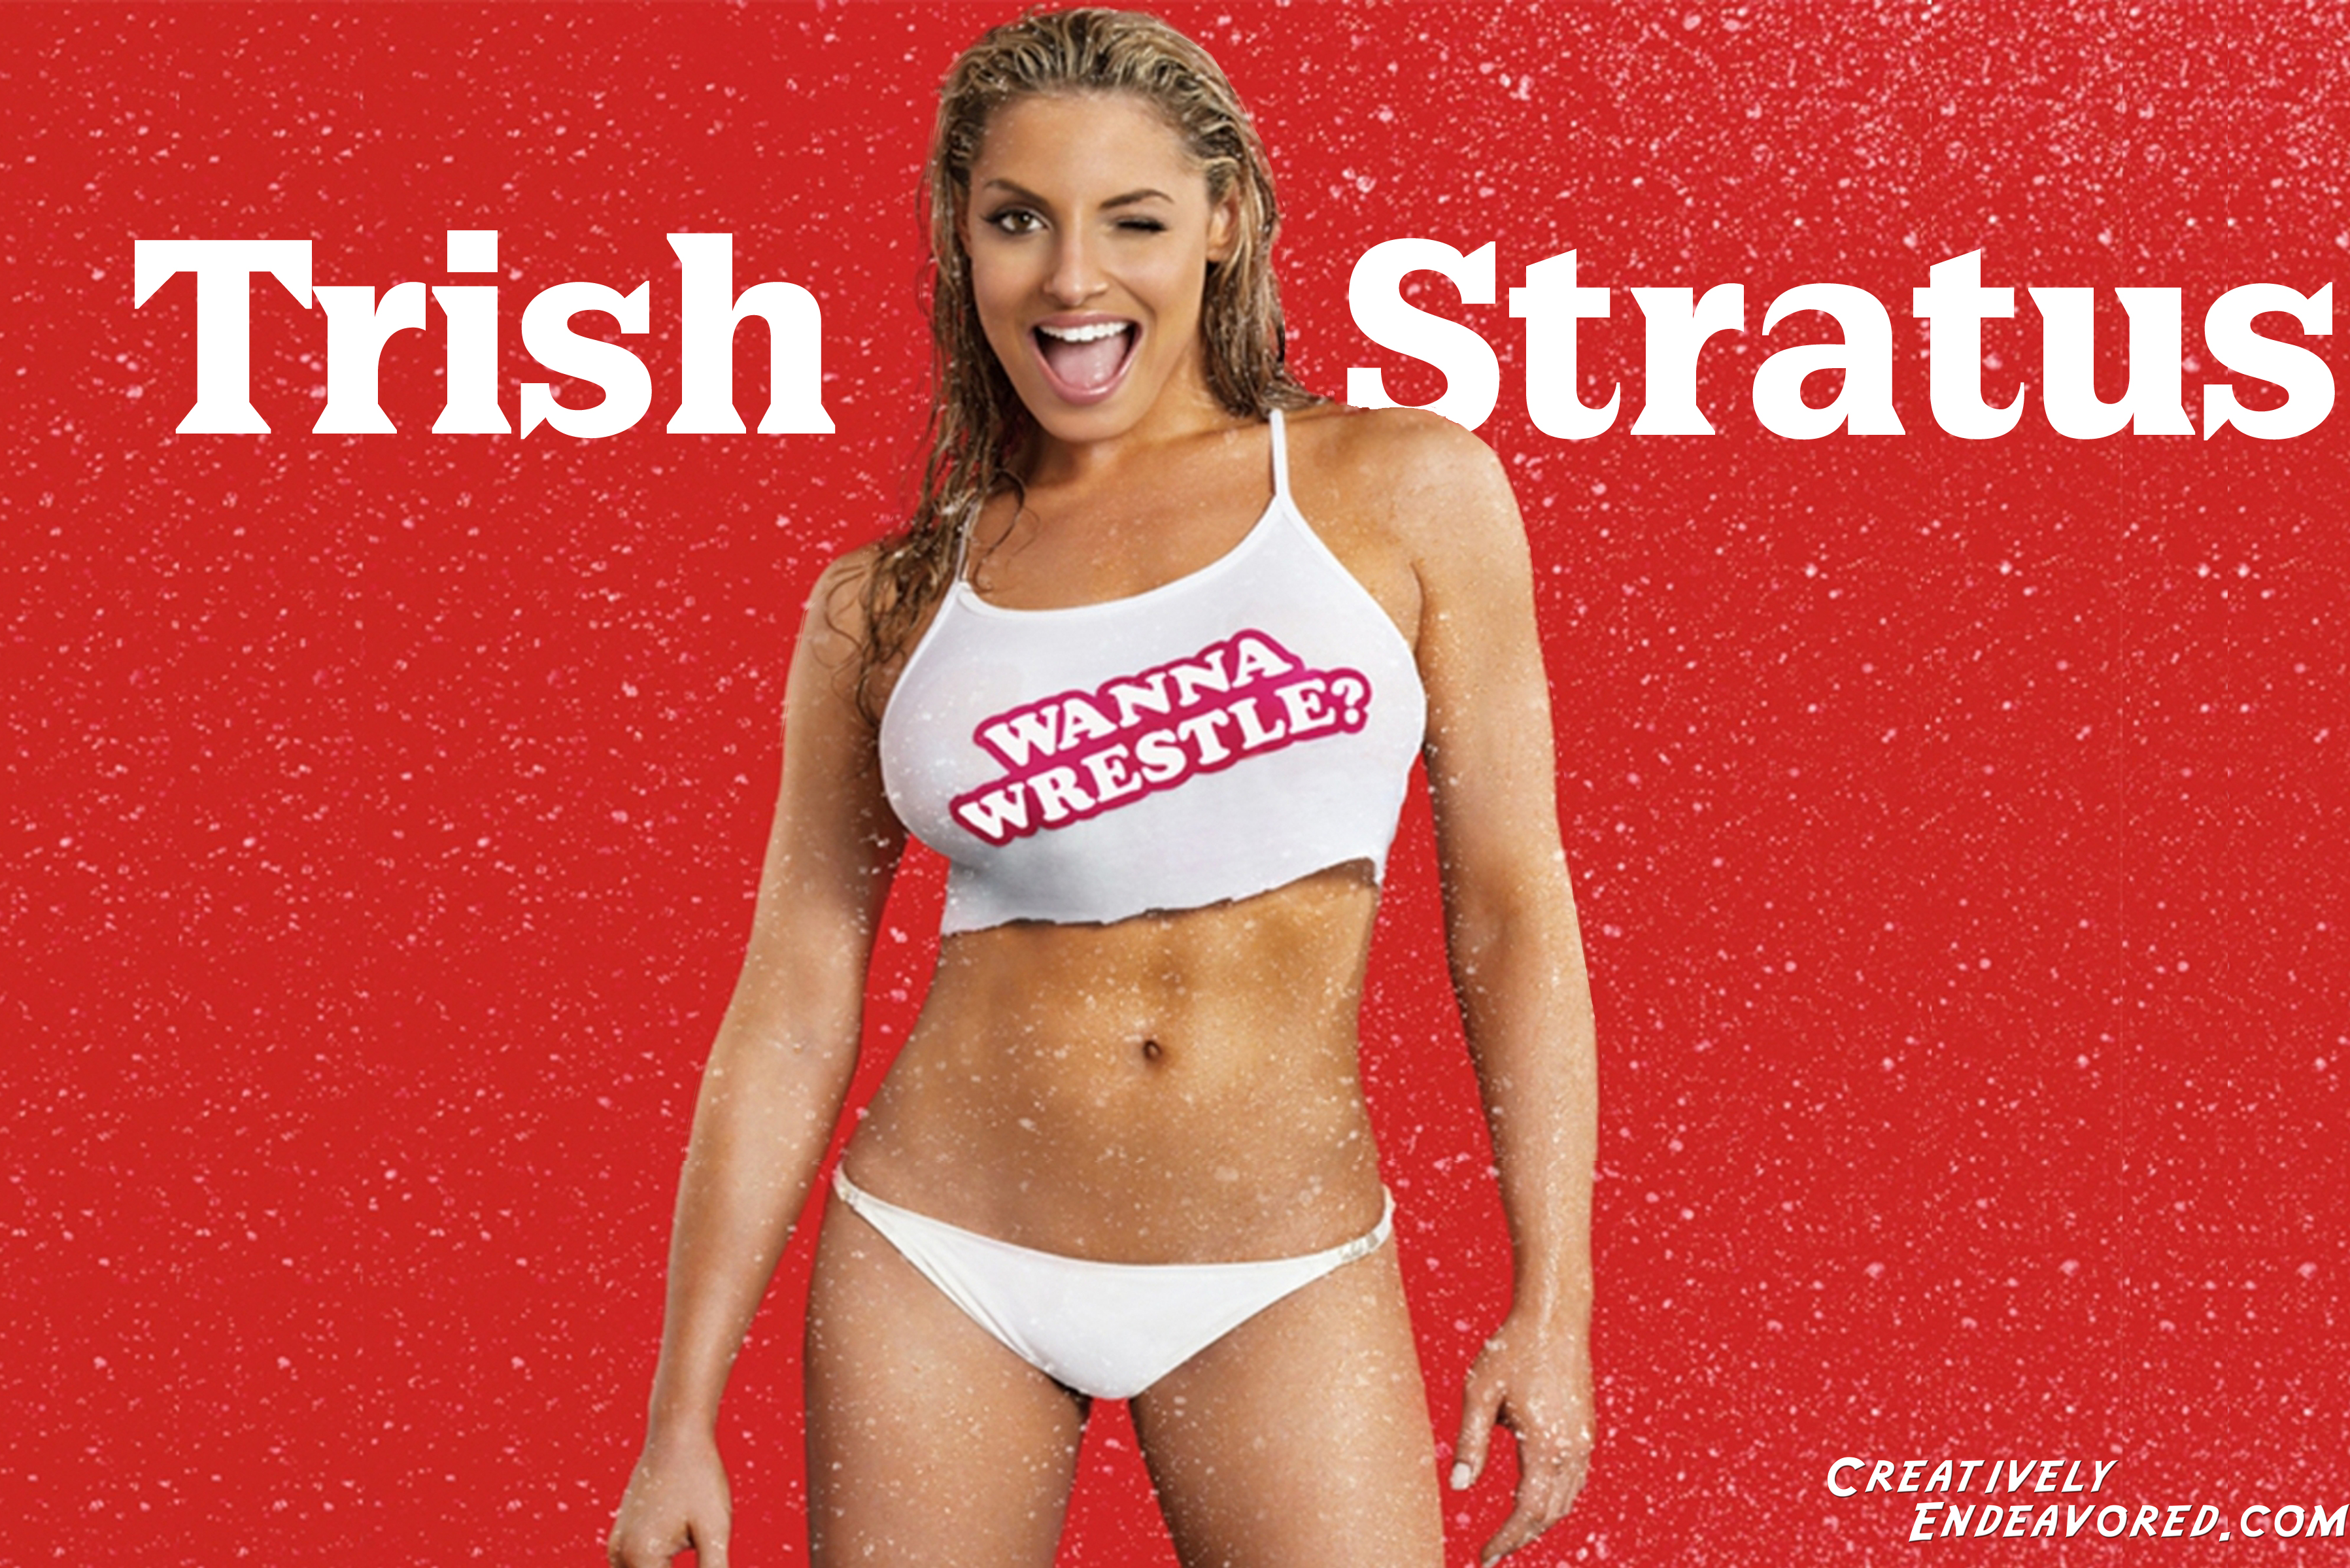 from Victor naked pictures of chris trish stratus